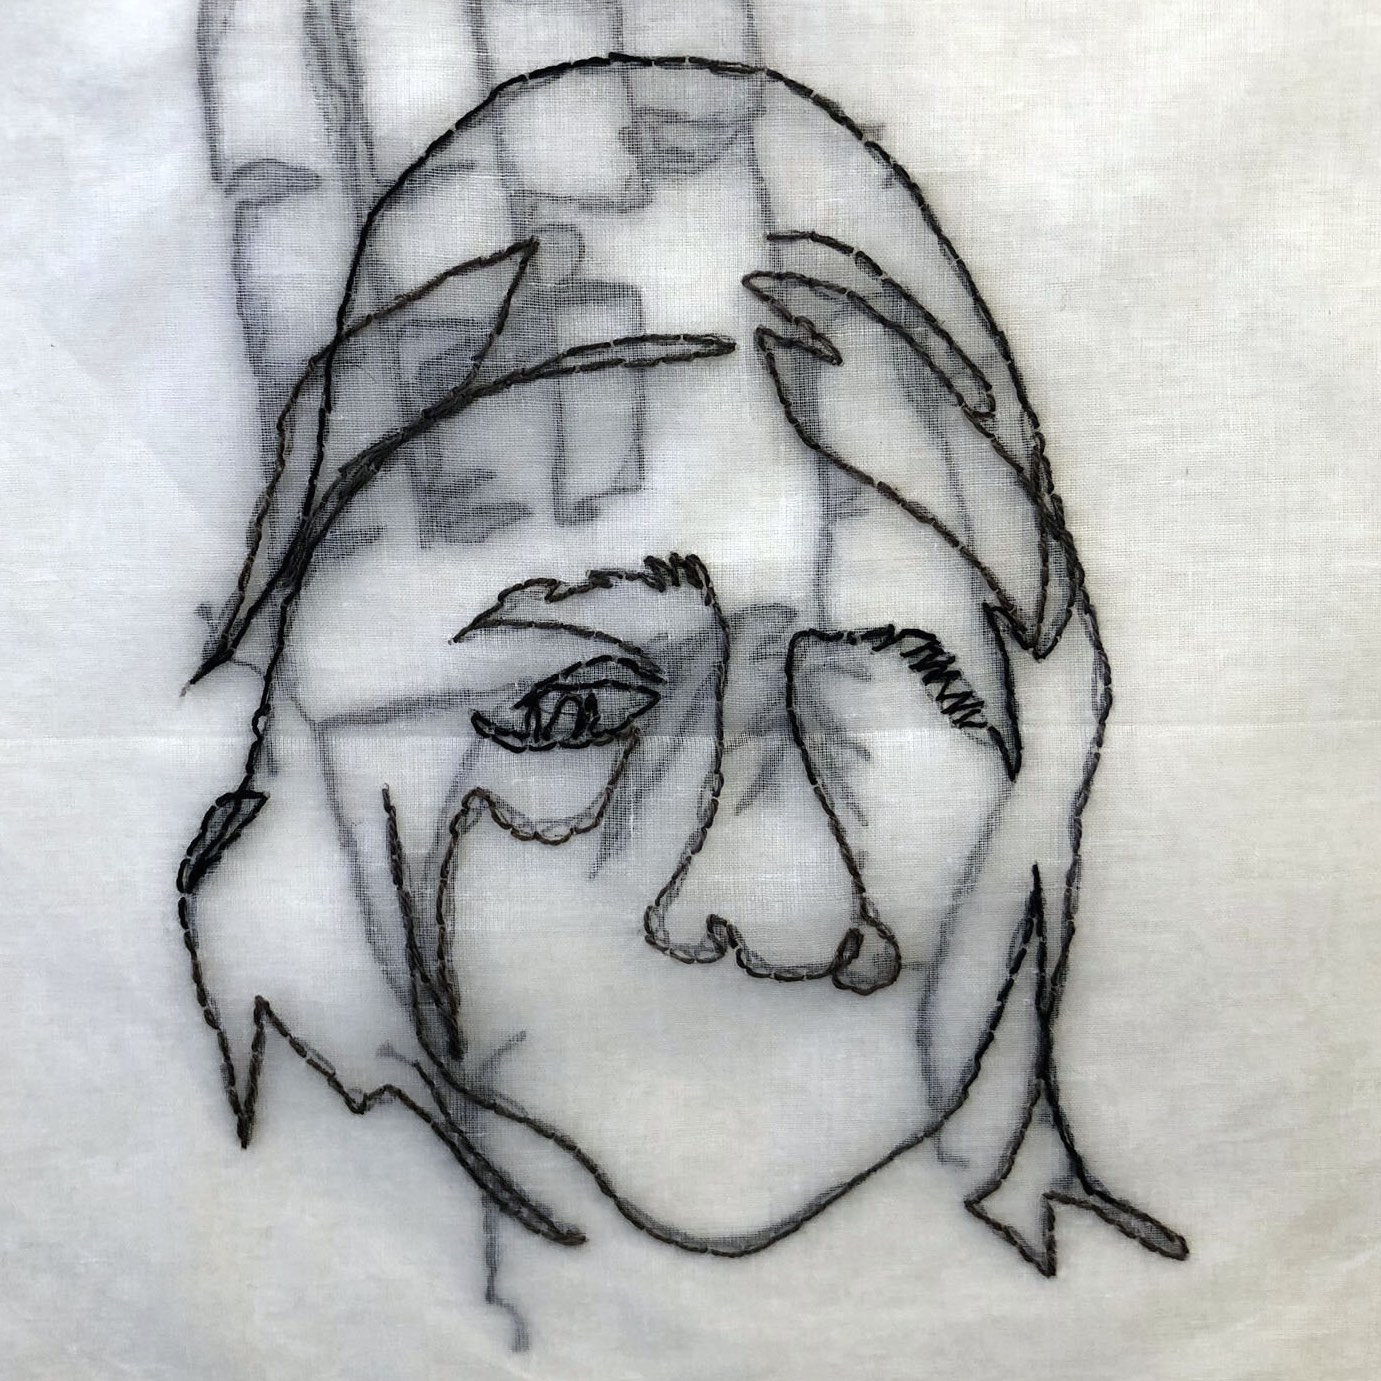 stitched illustration of a face